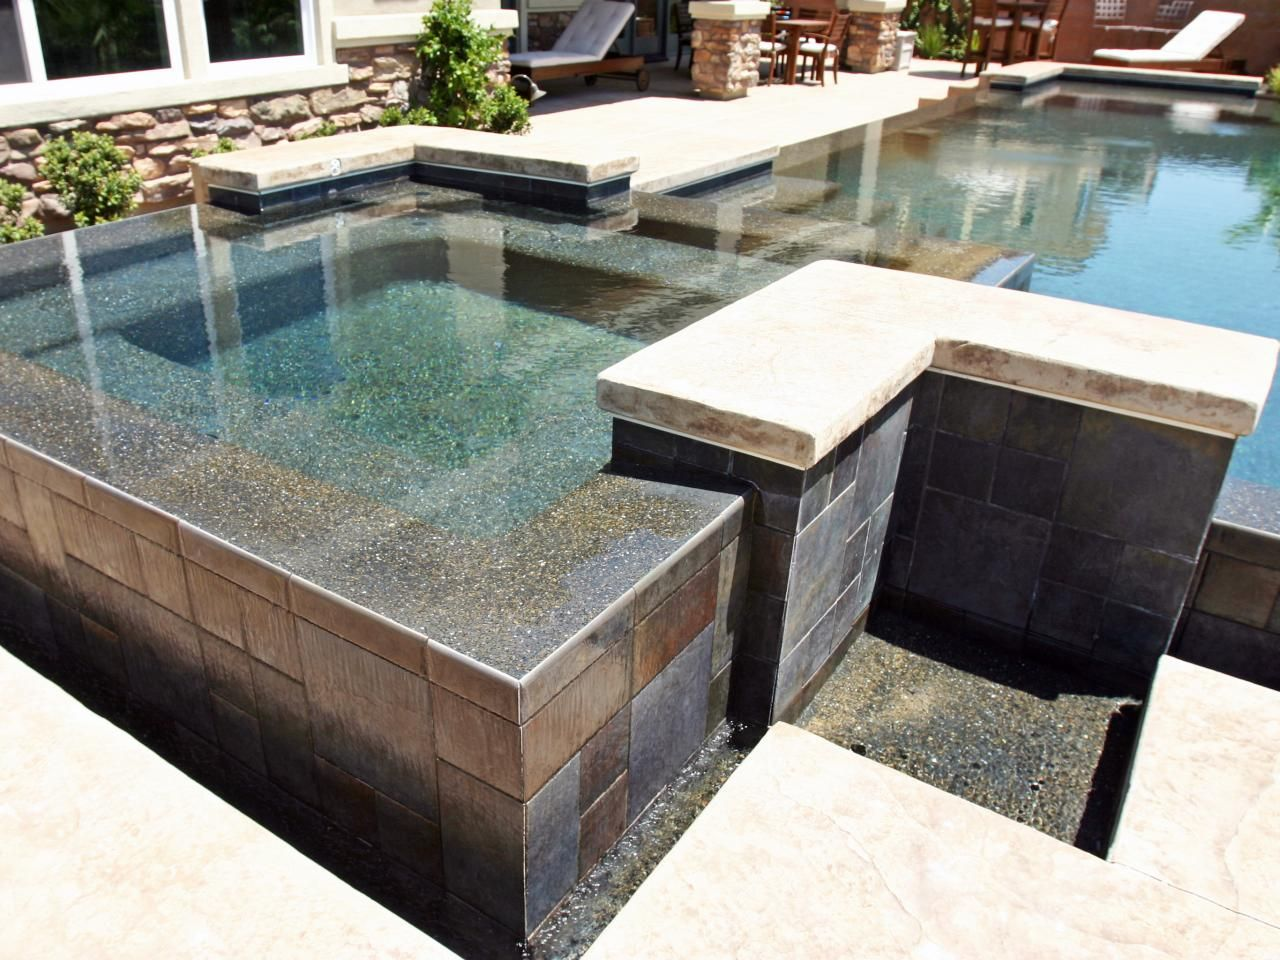 This lovely backyard pool and spa utilizes sharp geometric shapes ...